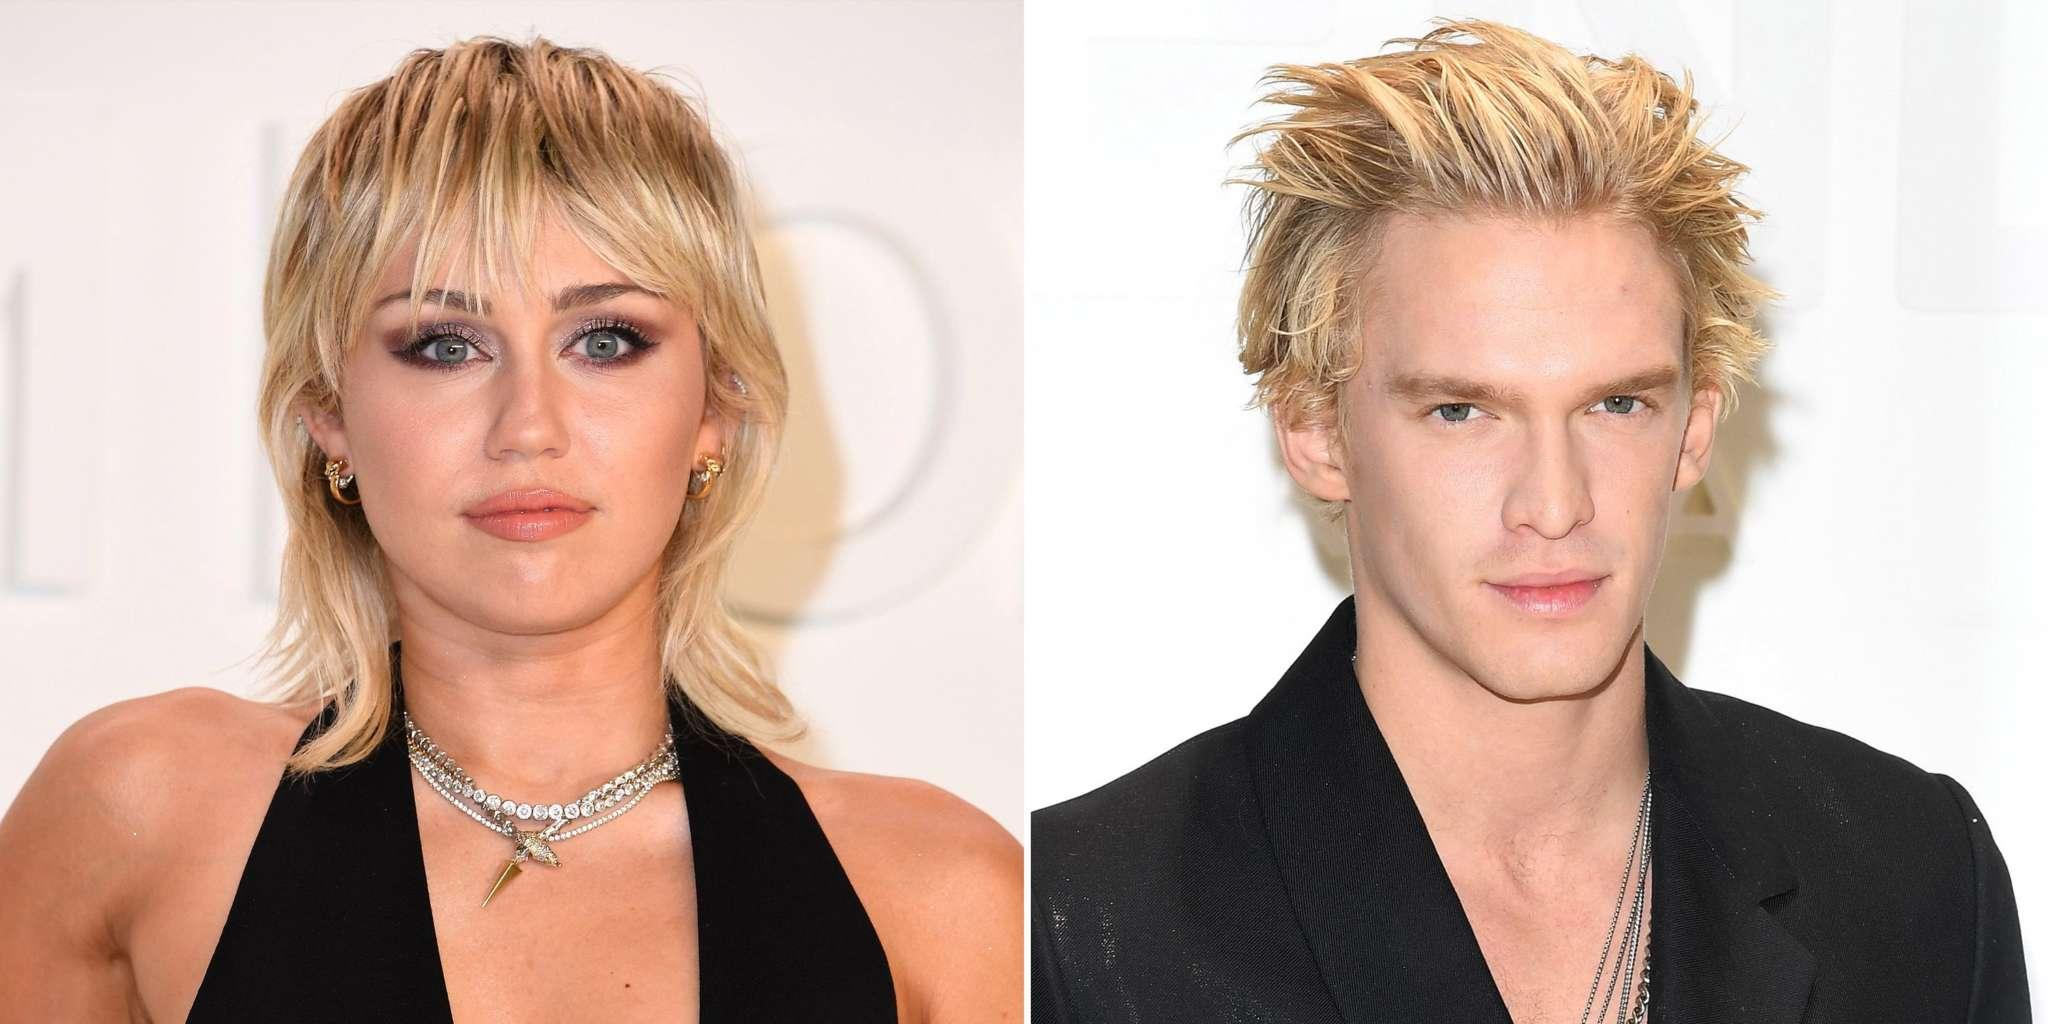 Miley Cyrus - Here's What She Thinks About Cody Simpson Saying He's Not Ready For Marriage!